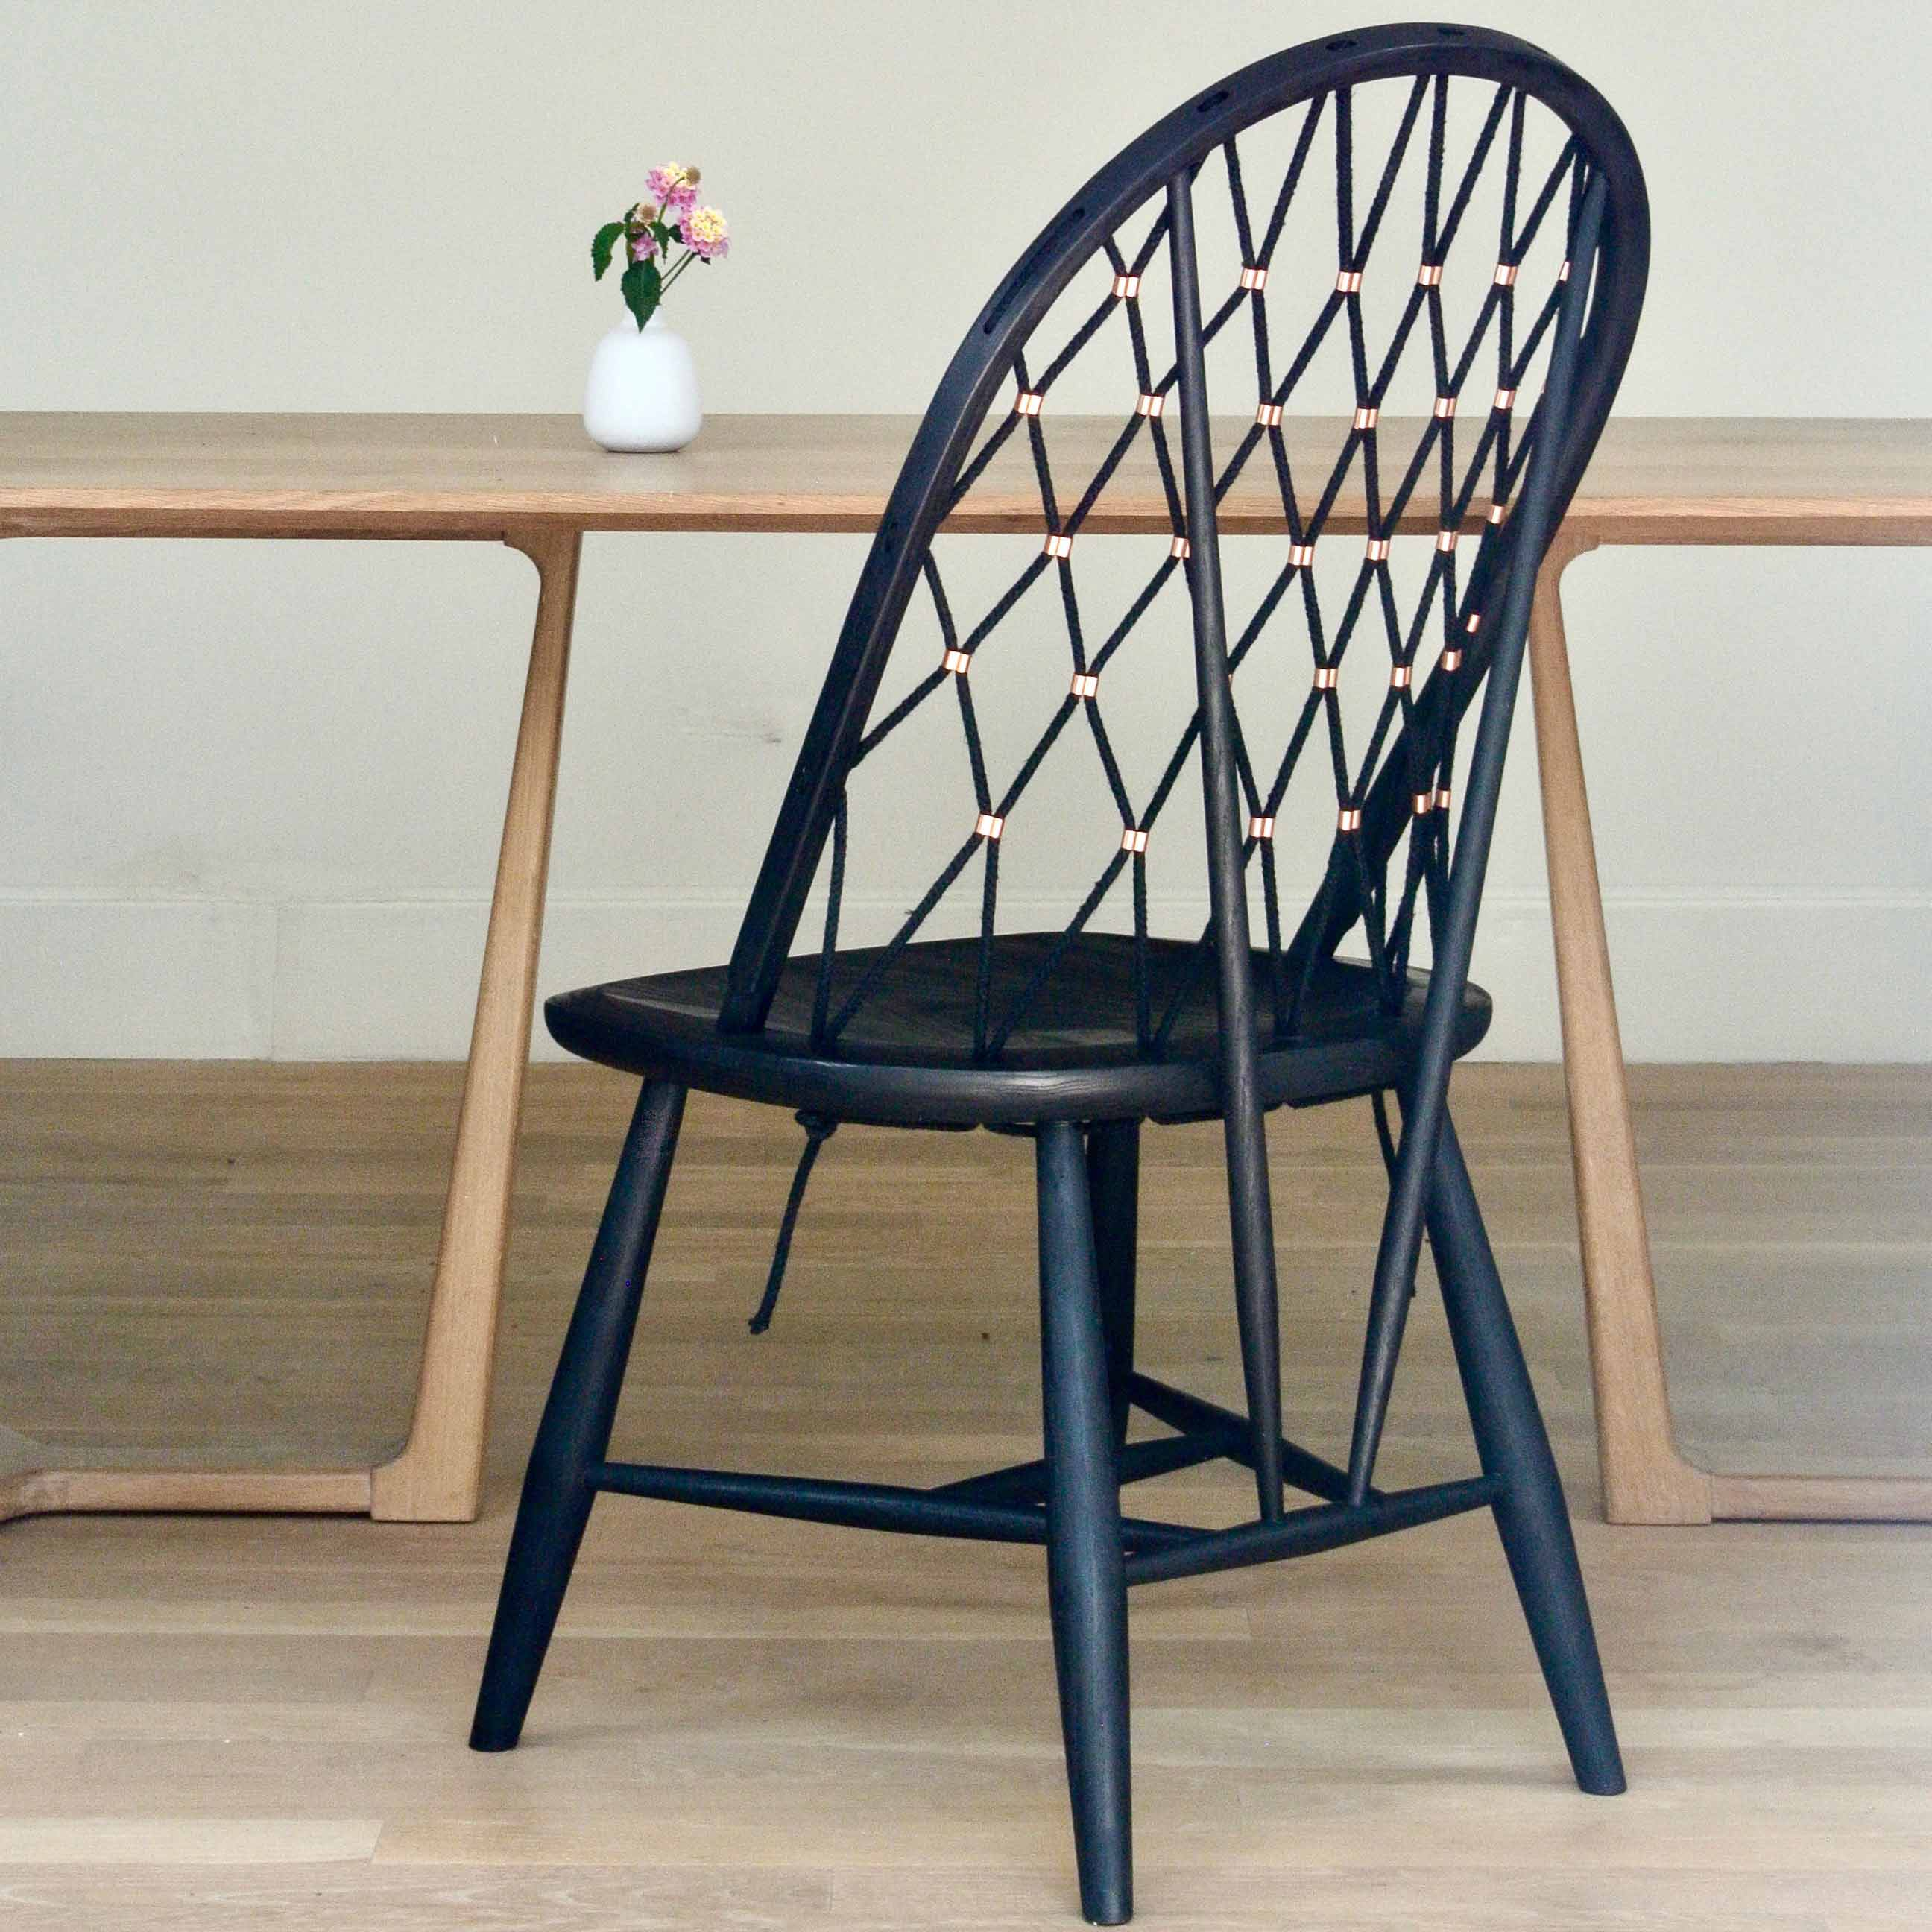 Our Woven Bow Back Chair Is A Modern And Unusual Twist On A Perennial  Design Favorite. Elegantly Upgraded To Take Advantage Of The Finest Woods,  ...